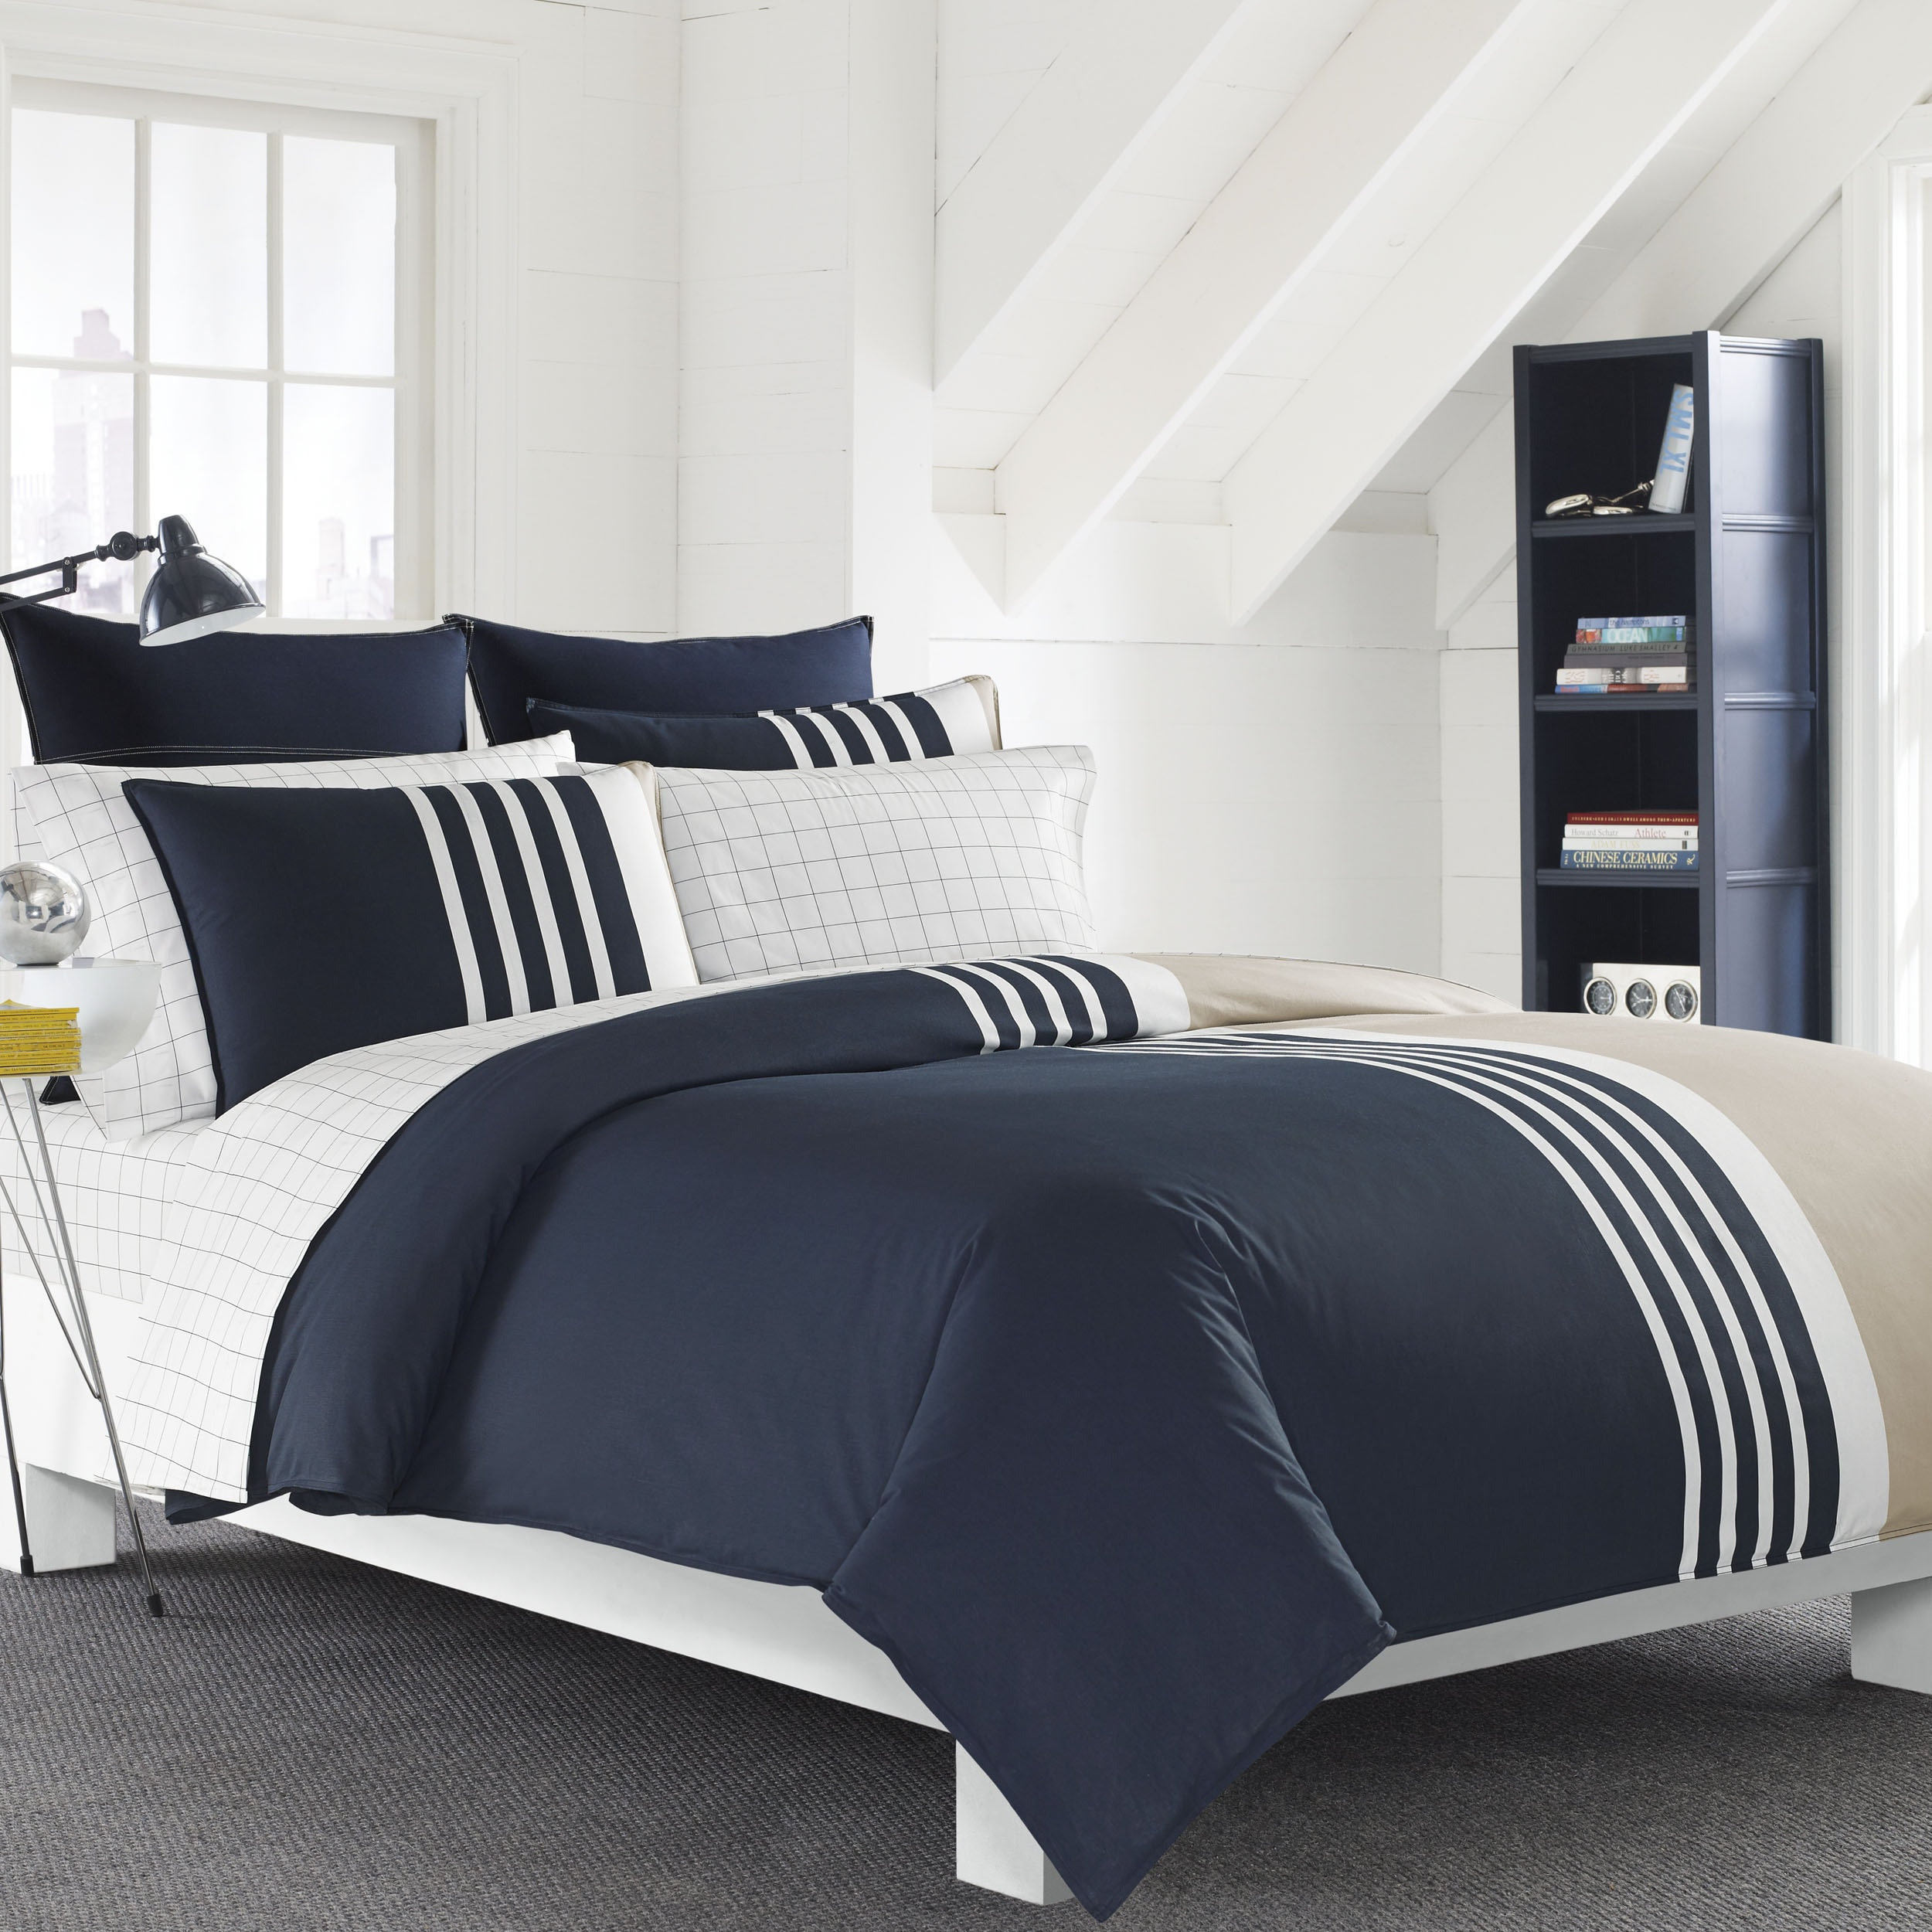 free set com comforter on bedding bath product bed shipping decor reyna lush overstock piece orders